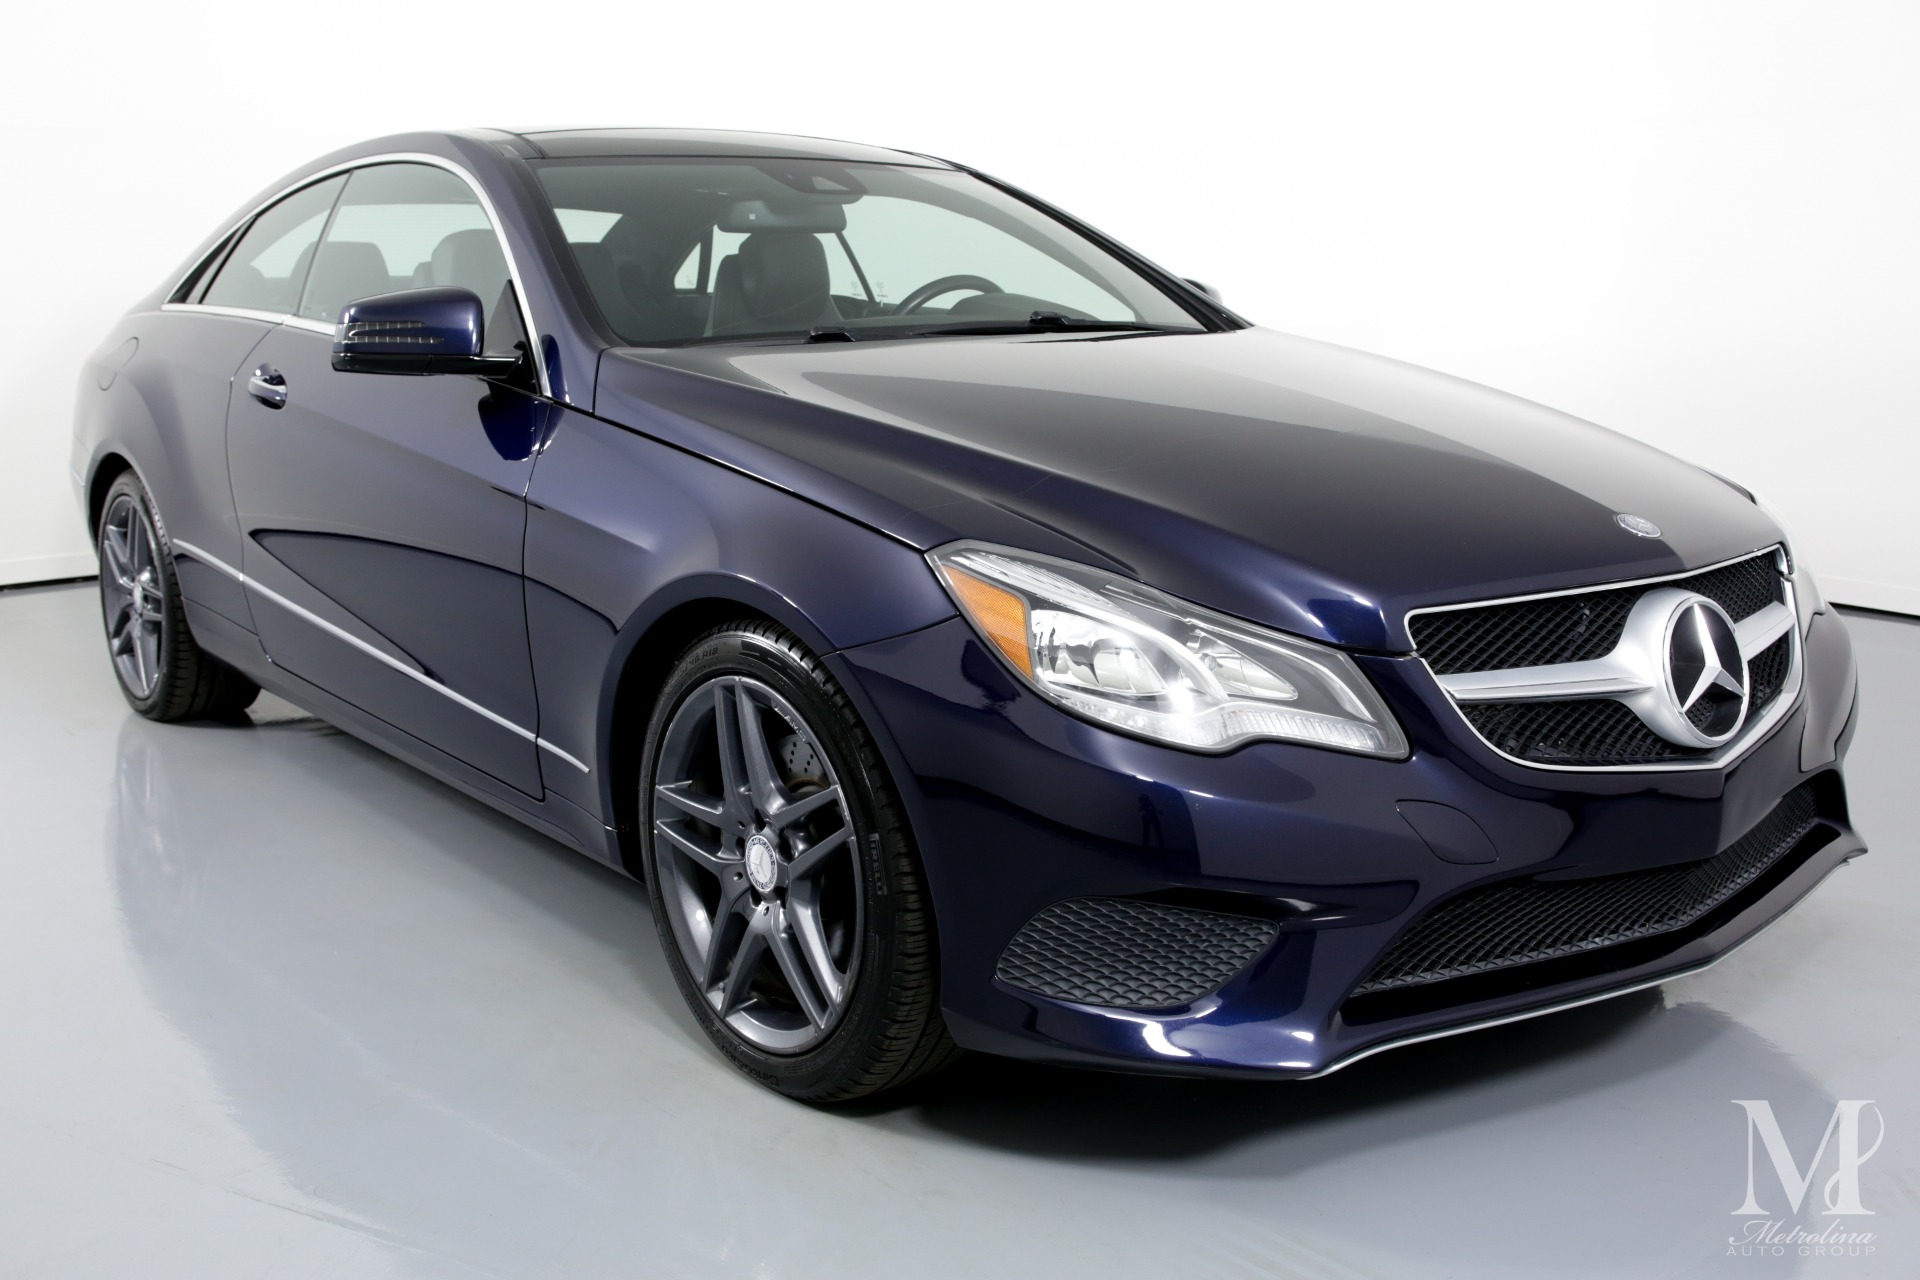 Used 2014 Mercedes-Benz E-Class E 350 4MATIC AWD 2dr Coupe for sale Sold at Metrolina Auto Group in Charlotte NC 28217 - 2